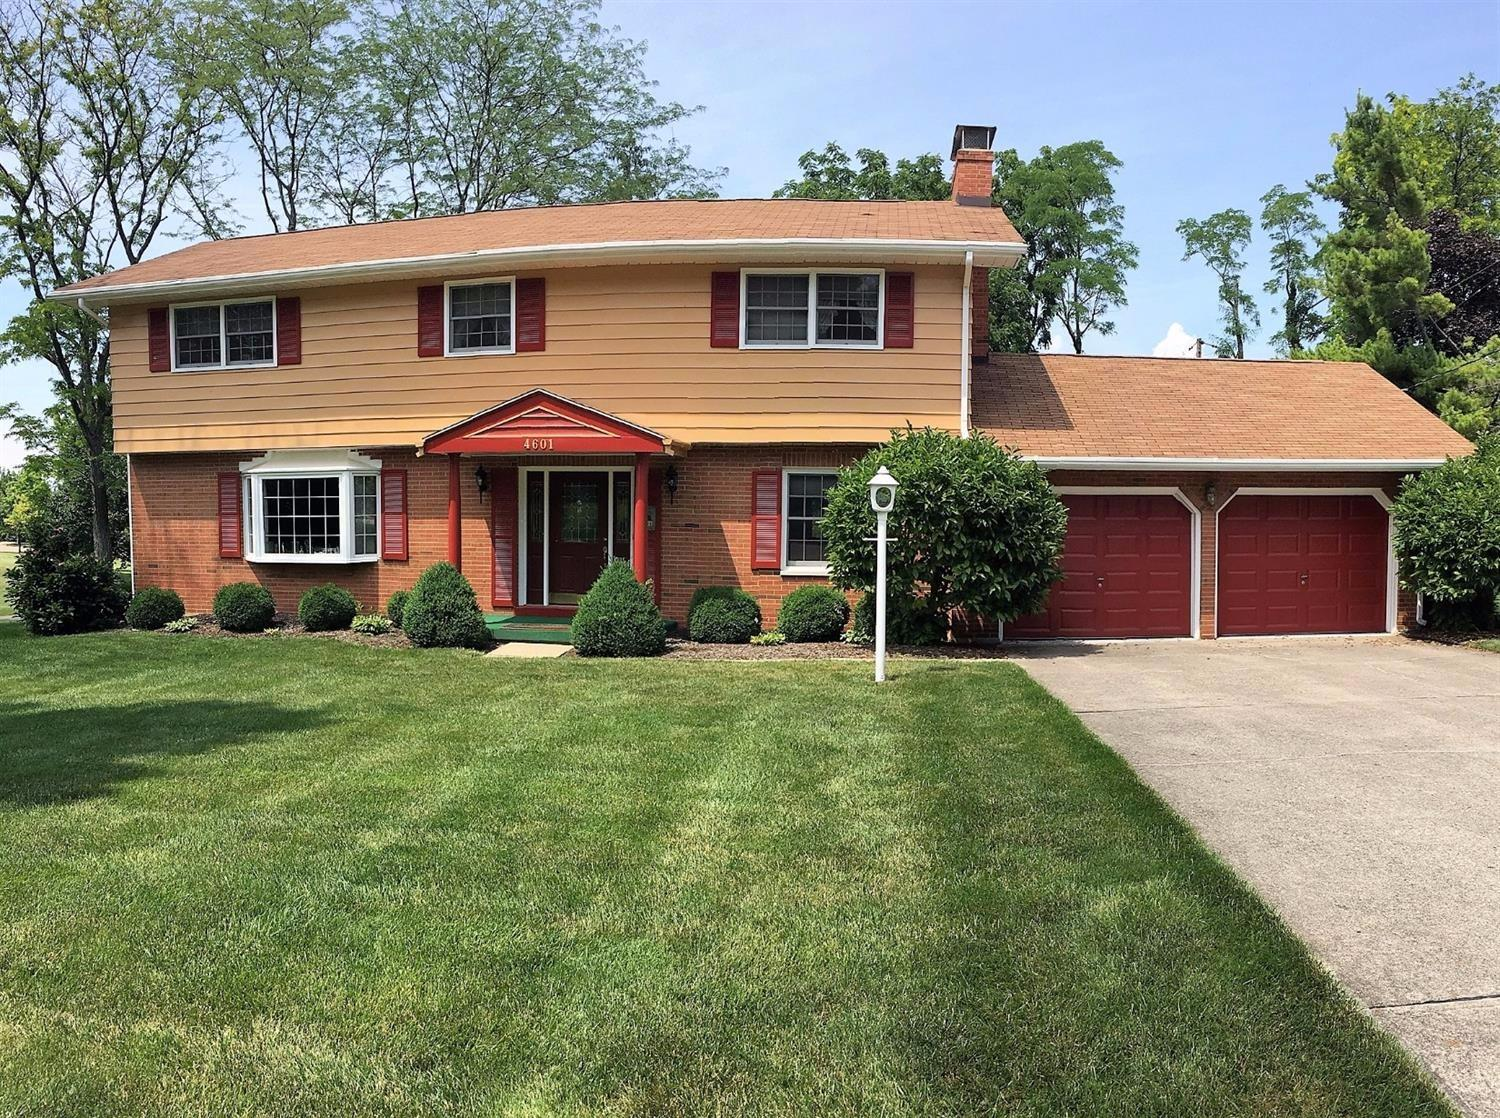 4601 Wicklow Dr Middletown North, OH